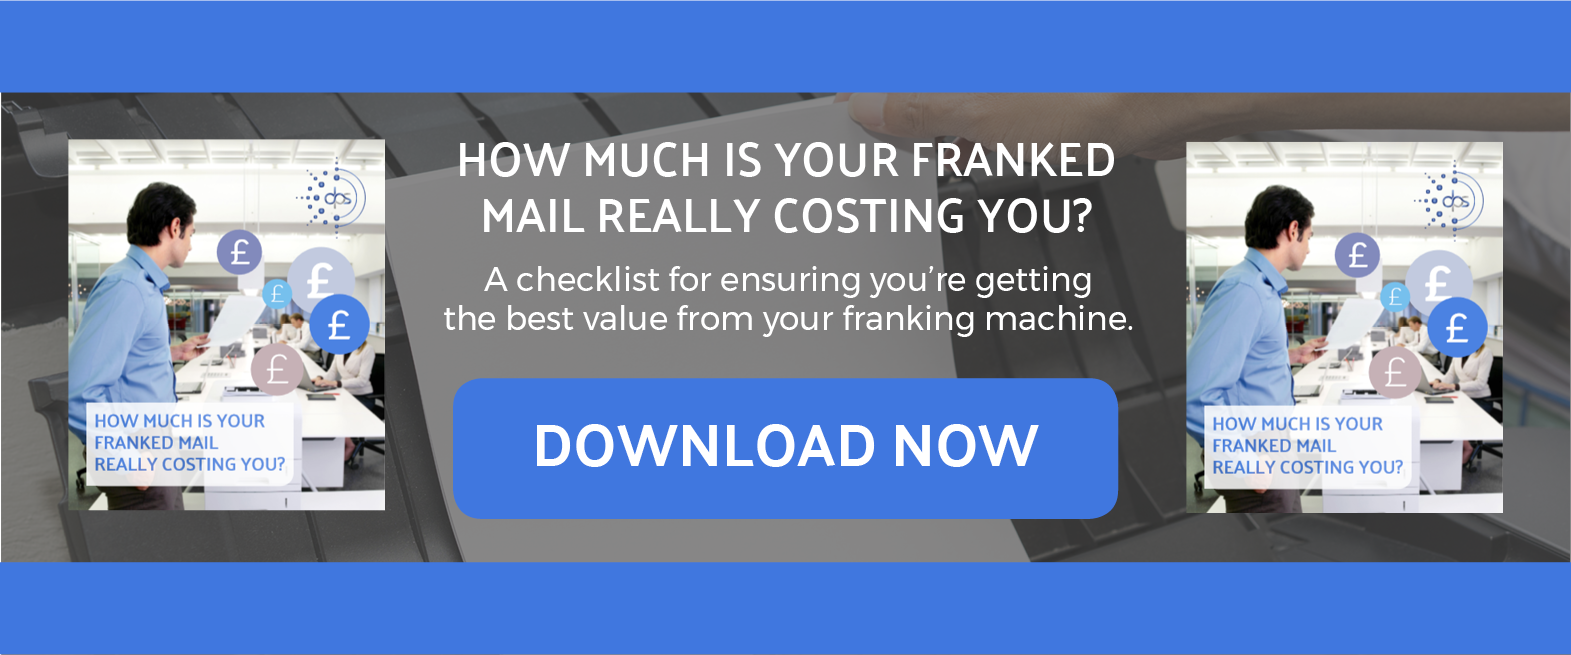 Dps postal services copiers franking machines supplier fandeluxe